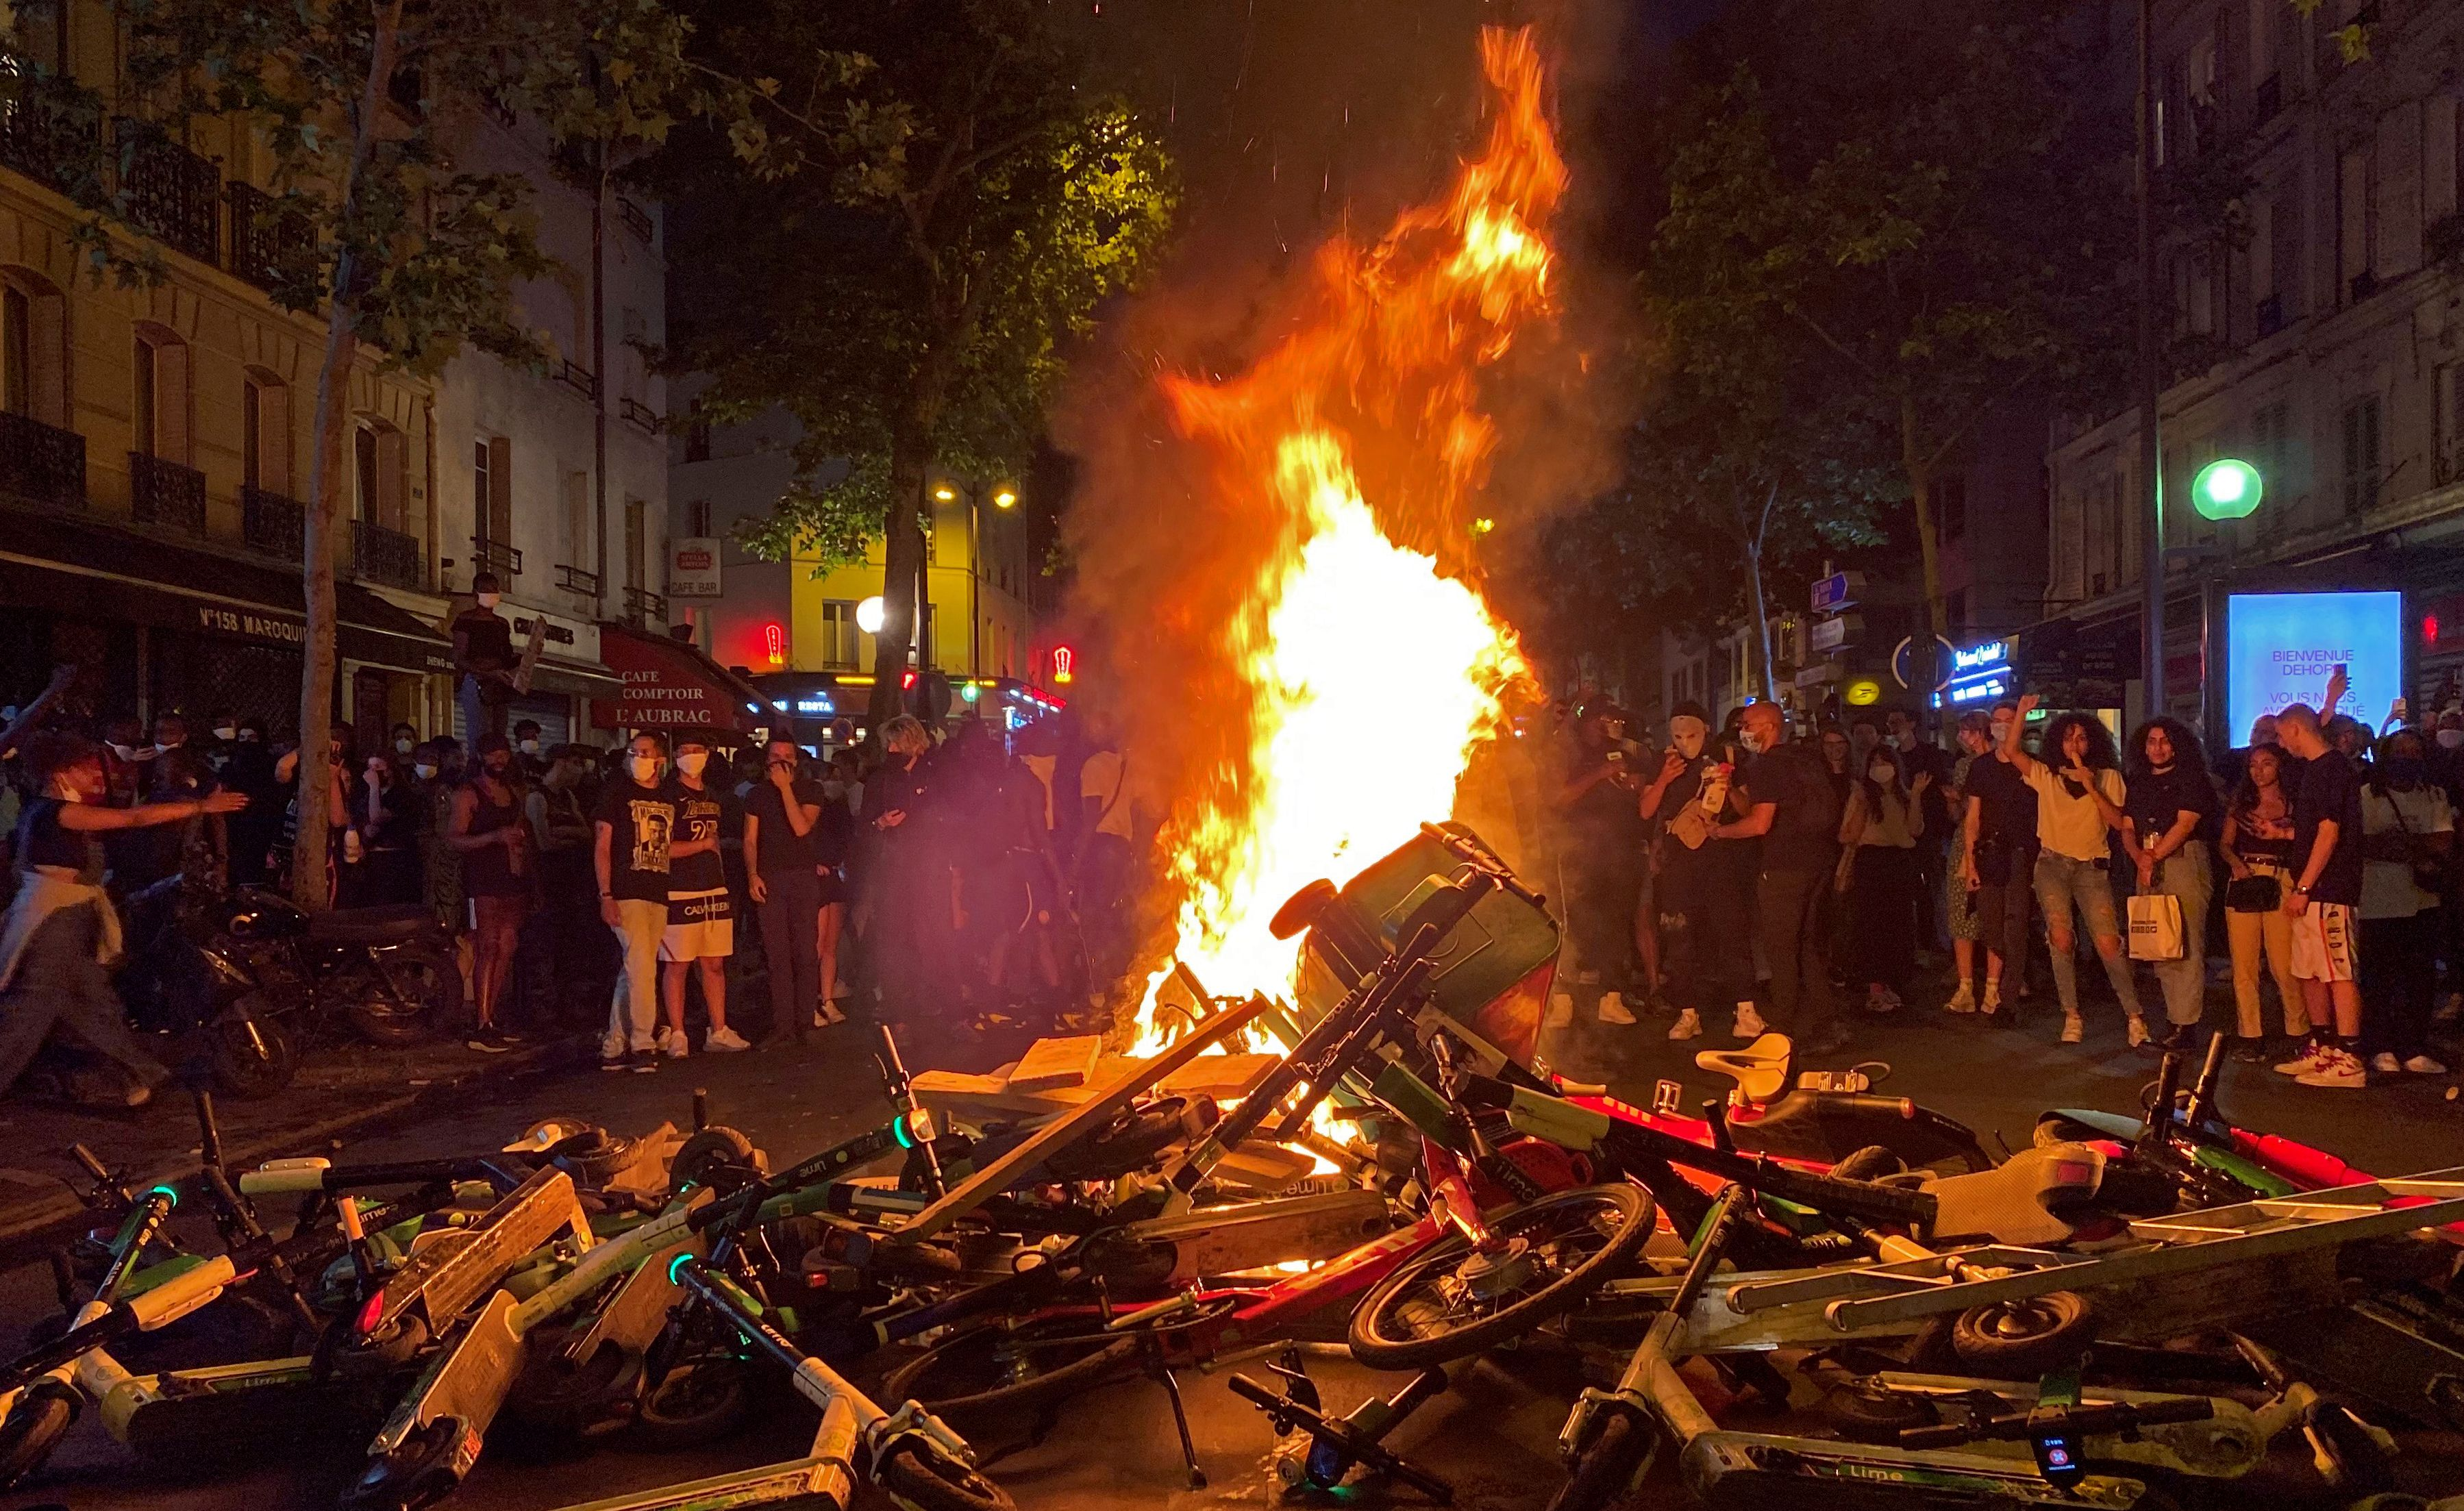 Protesters burn trash bins, shared scooters and bicycles on June 2, 2020 after a demonstration against police violence and in memory of late US citizen George Floyd who died a week before after a Minneapolis police officer knelt on his neck. (Photo by MOHAMMAD GHANNAM/AFP via Getty Images)